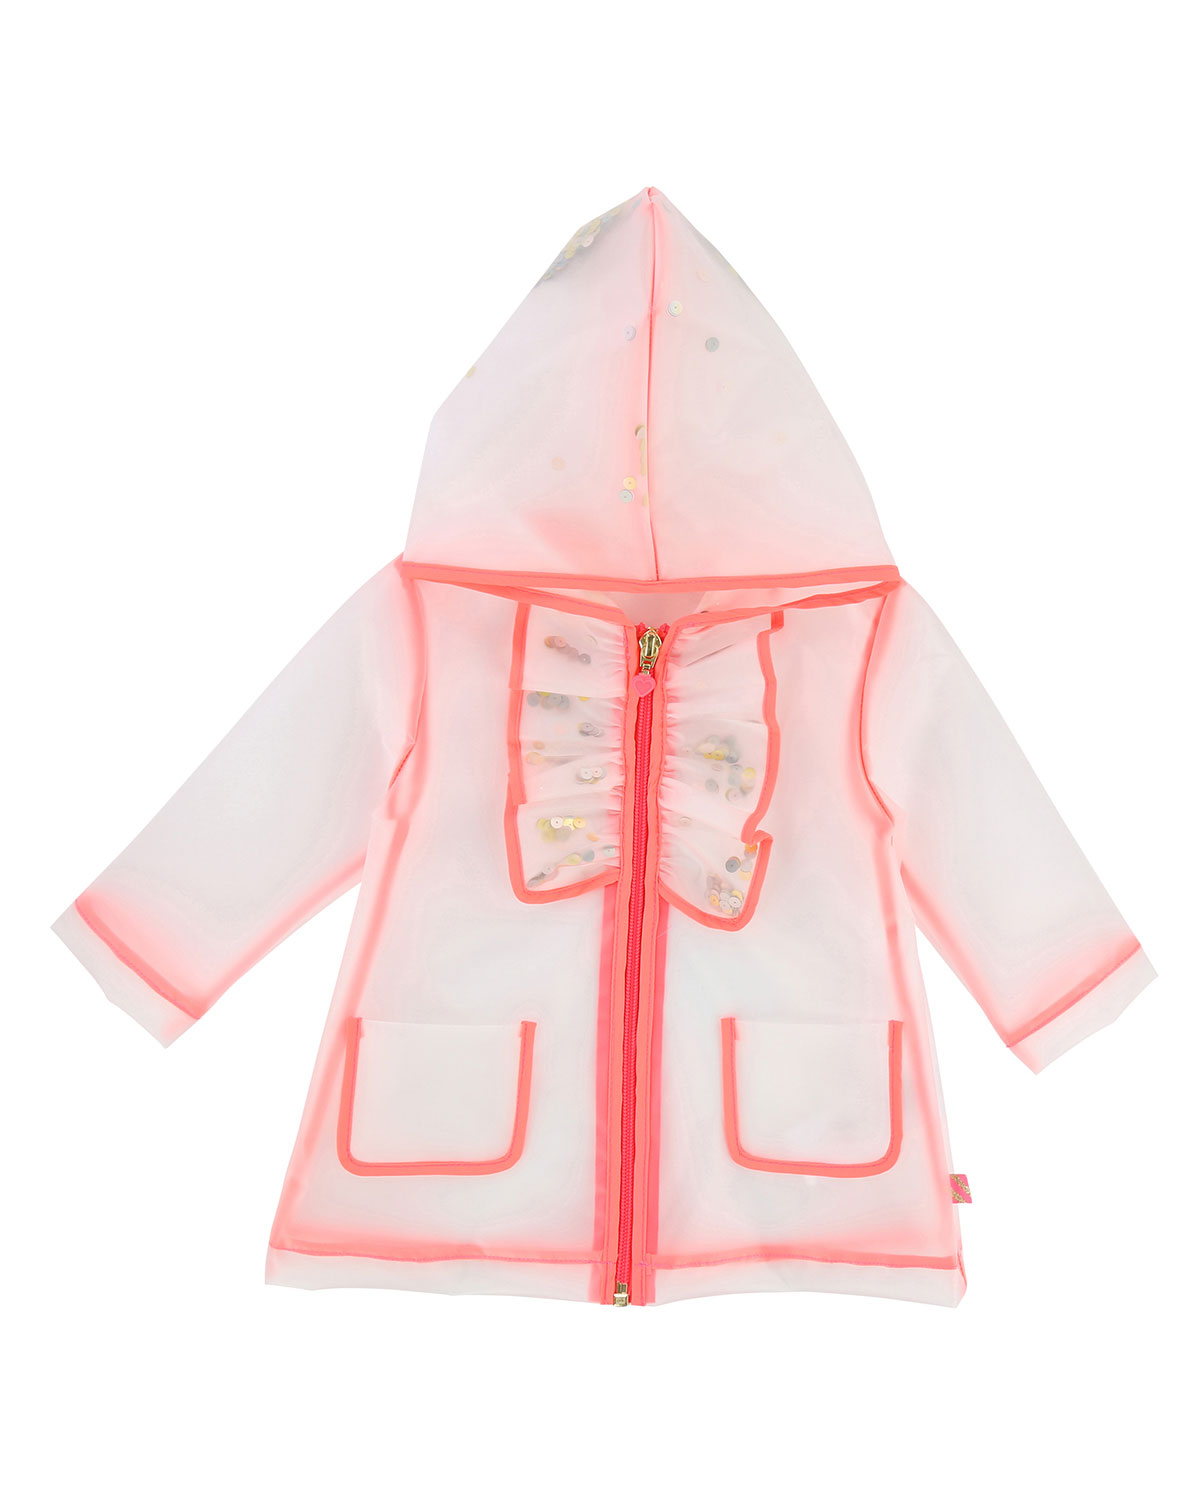 Transparent Sequin Raincoat, Size 2-3